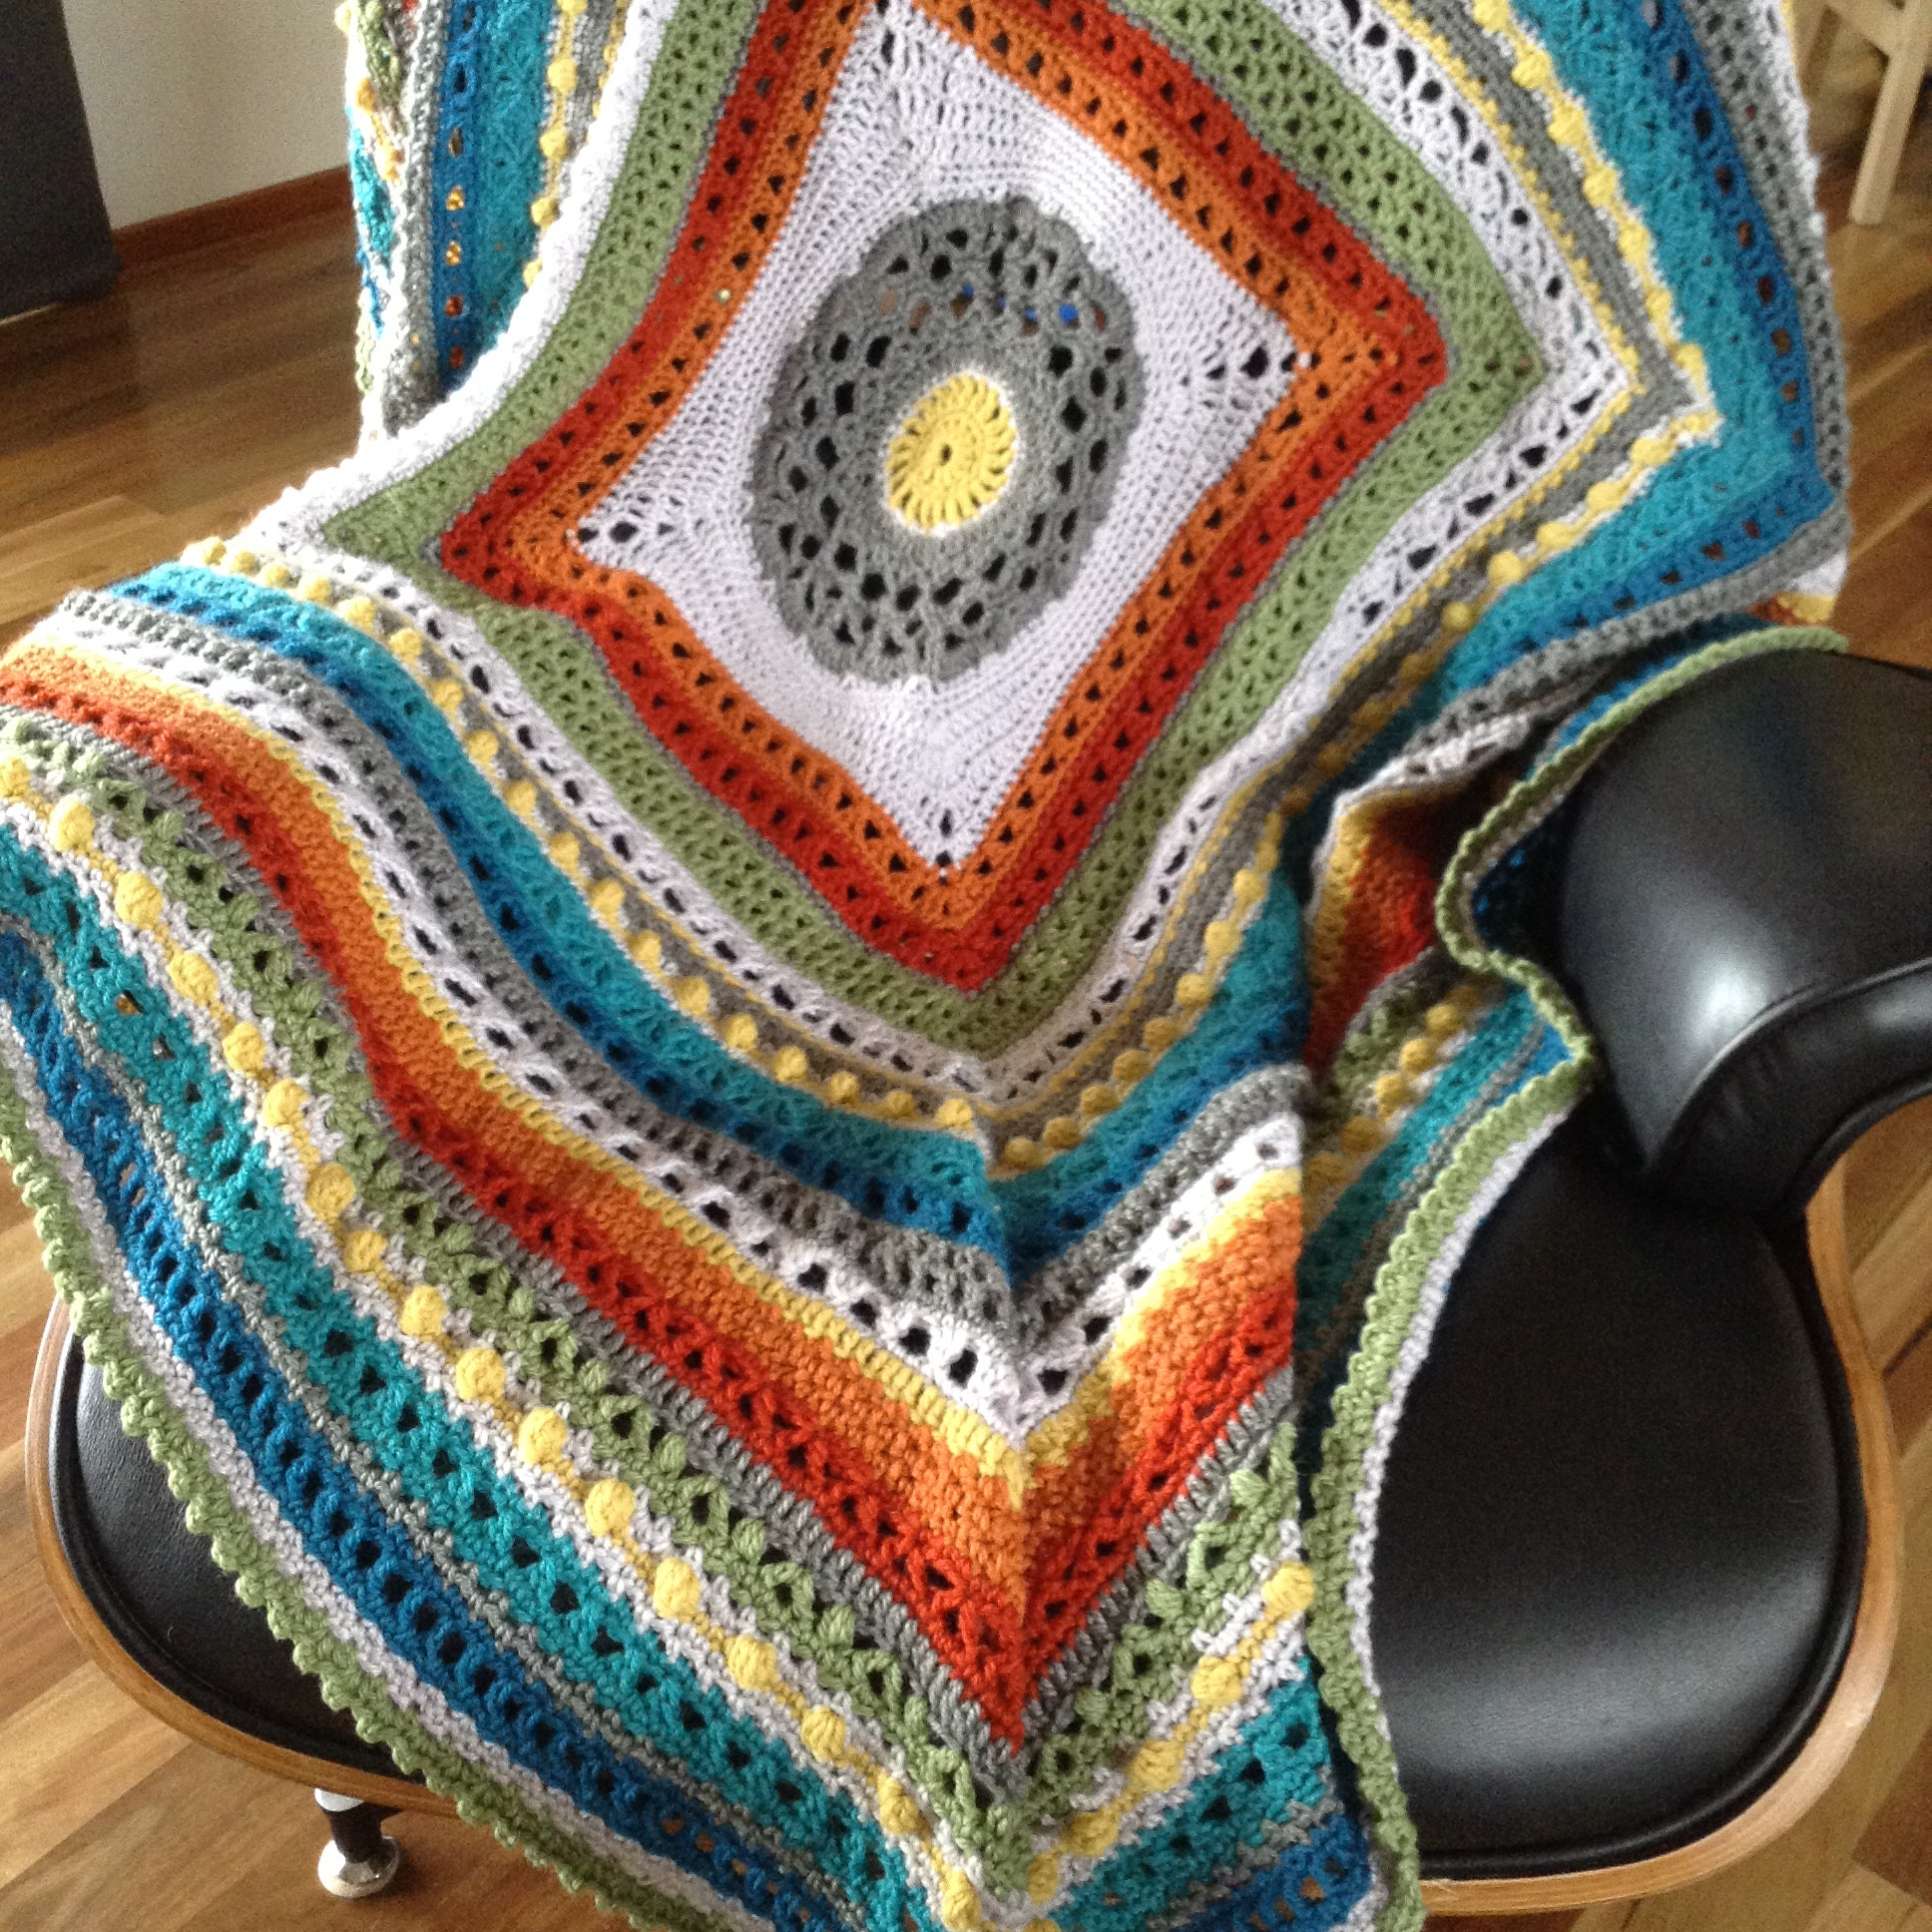 Best Of Afghan Different Crochet Stitches for Blankets Of Innovative 40 Pictures Different Crochet Stitches for Blankets